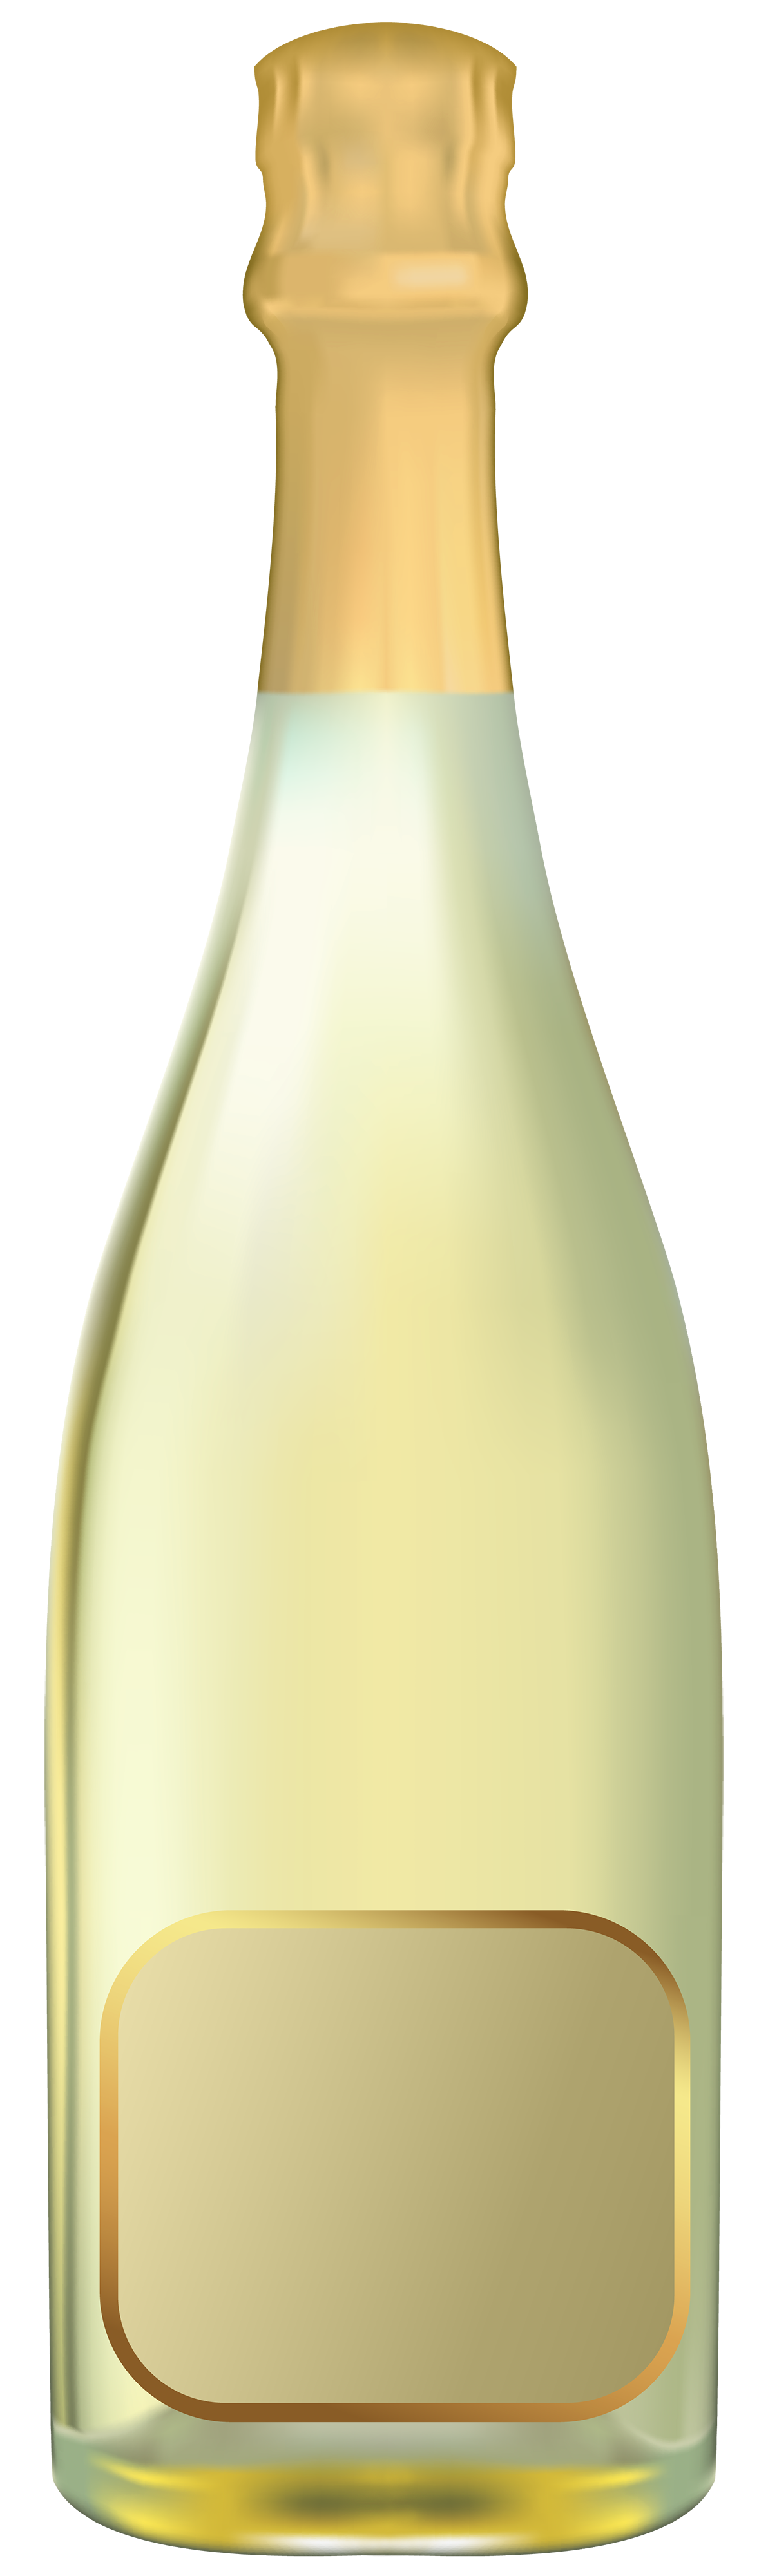 Martini clipart pink champagne bottle. White png best web